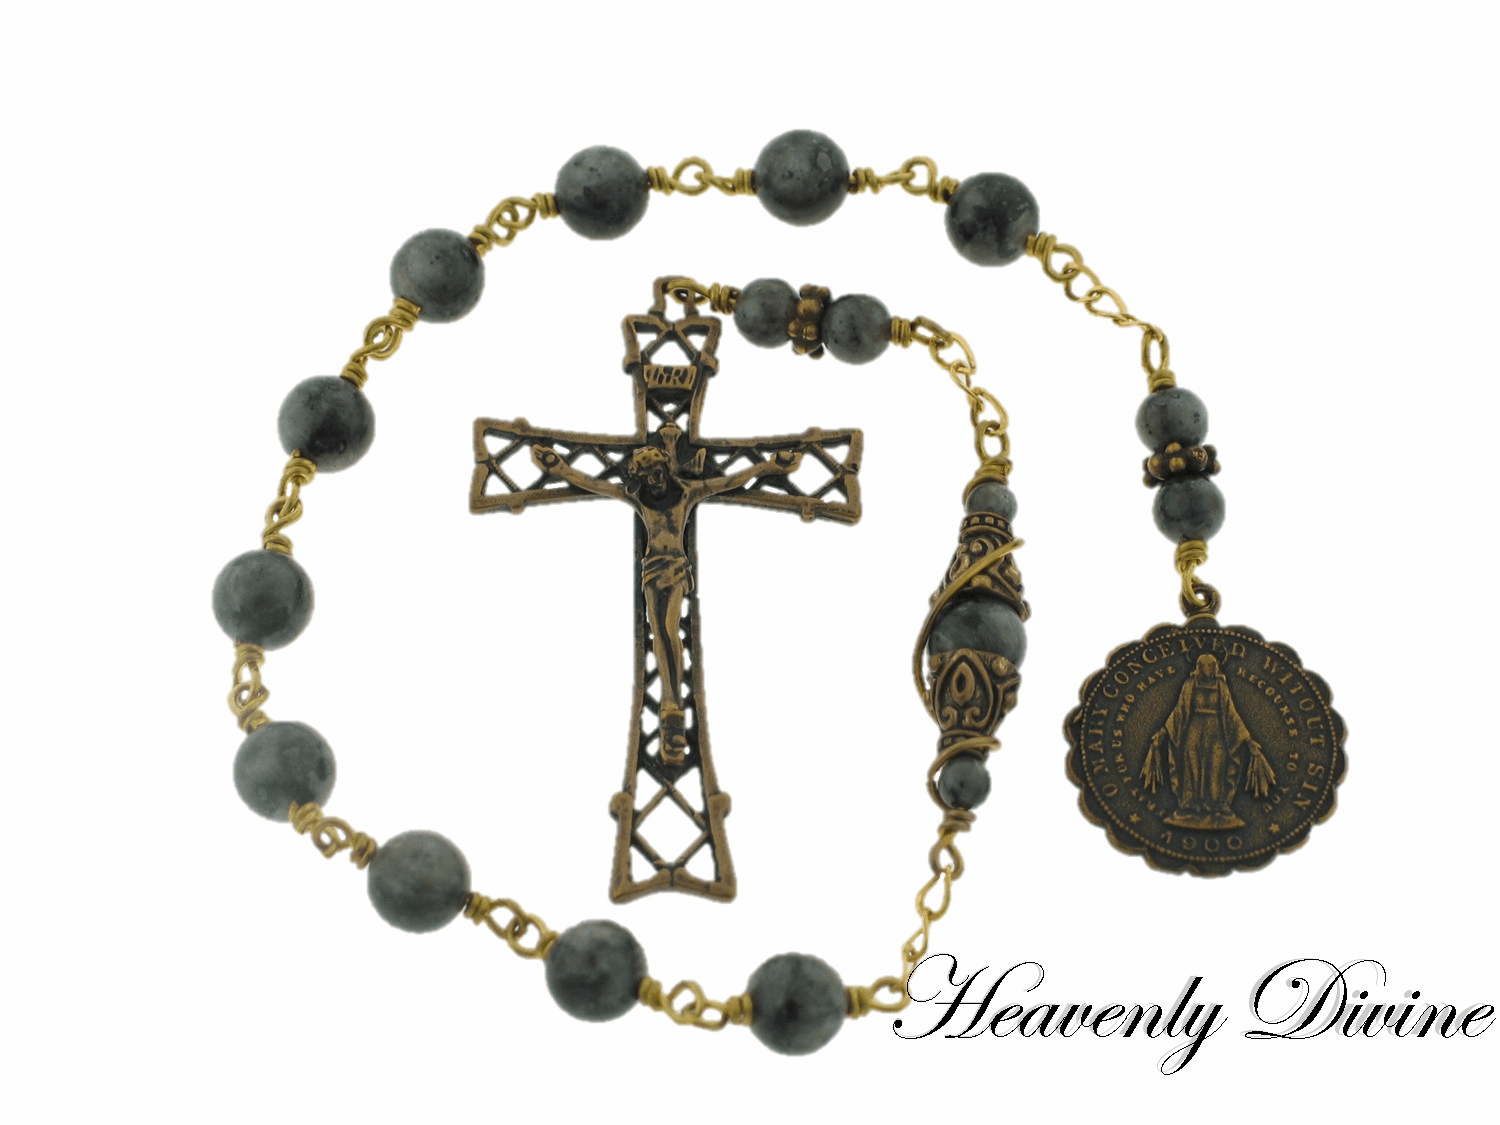 Blue Labradorite Sodality of the Children of Mary Pocket Rosary by Heavenly Divine